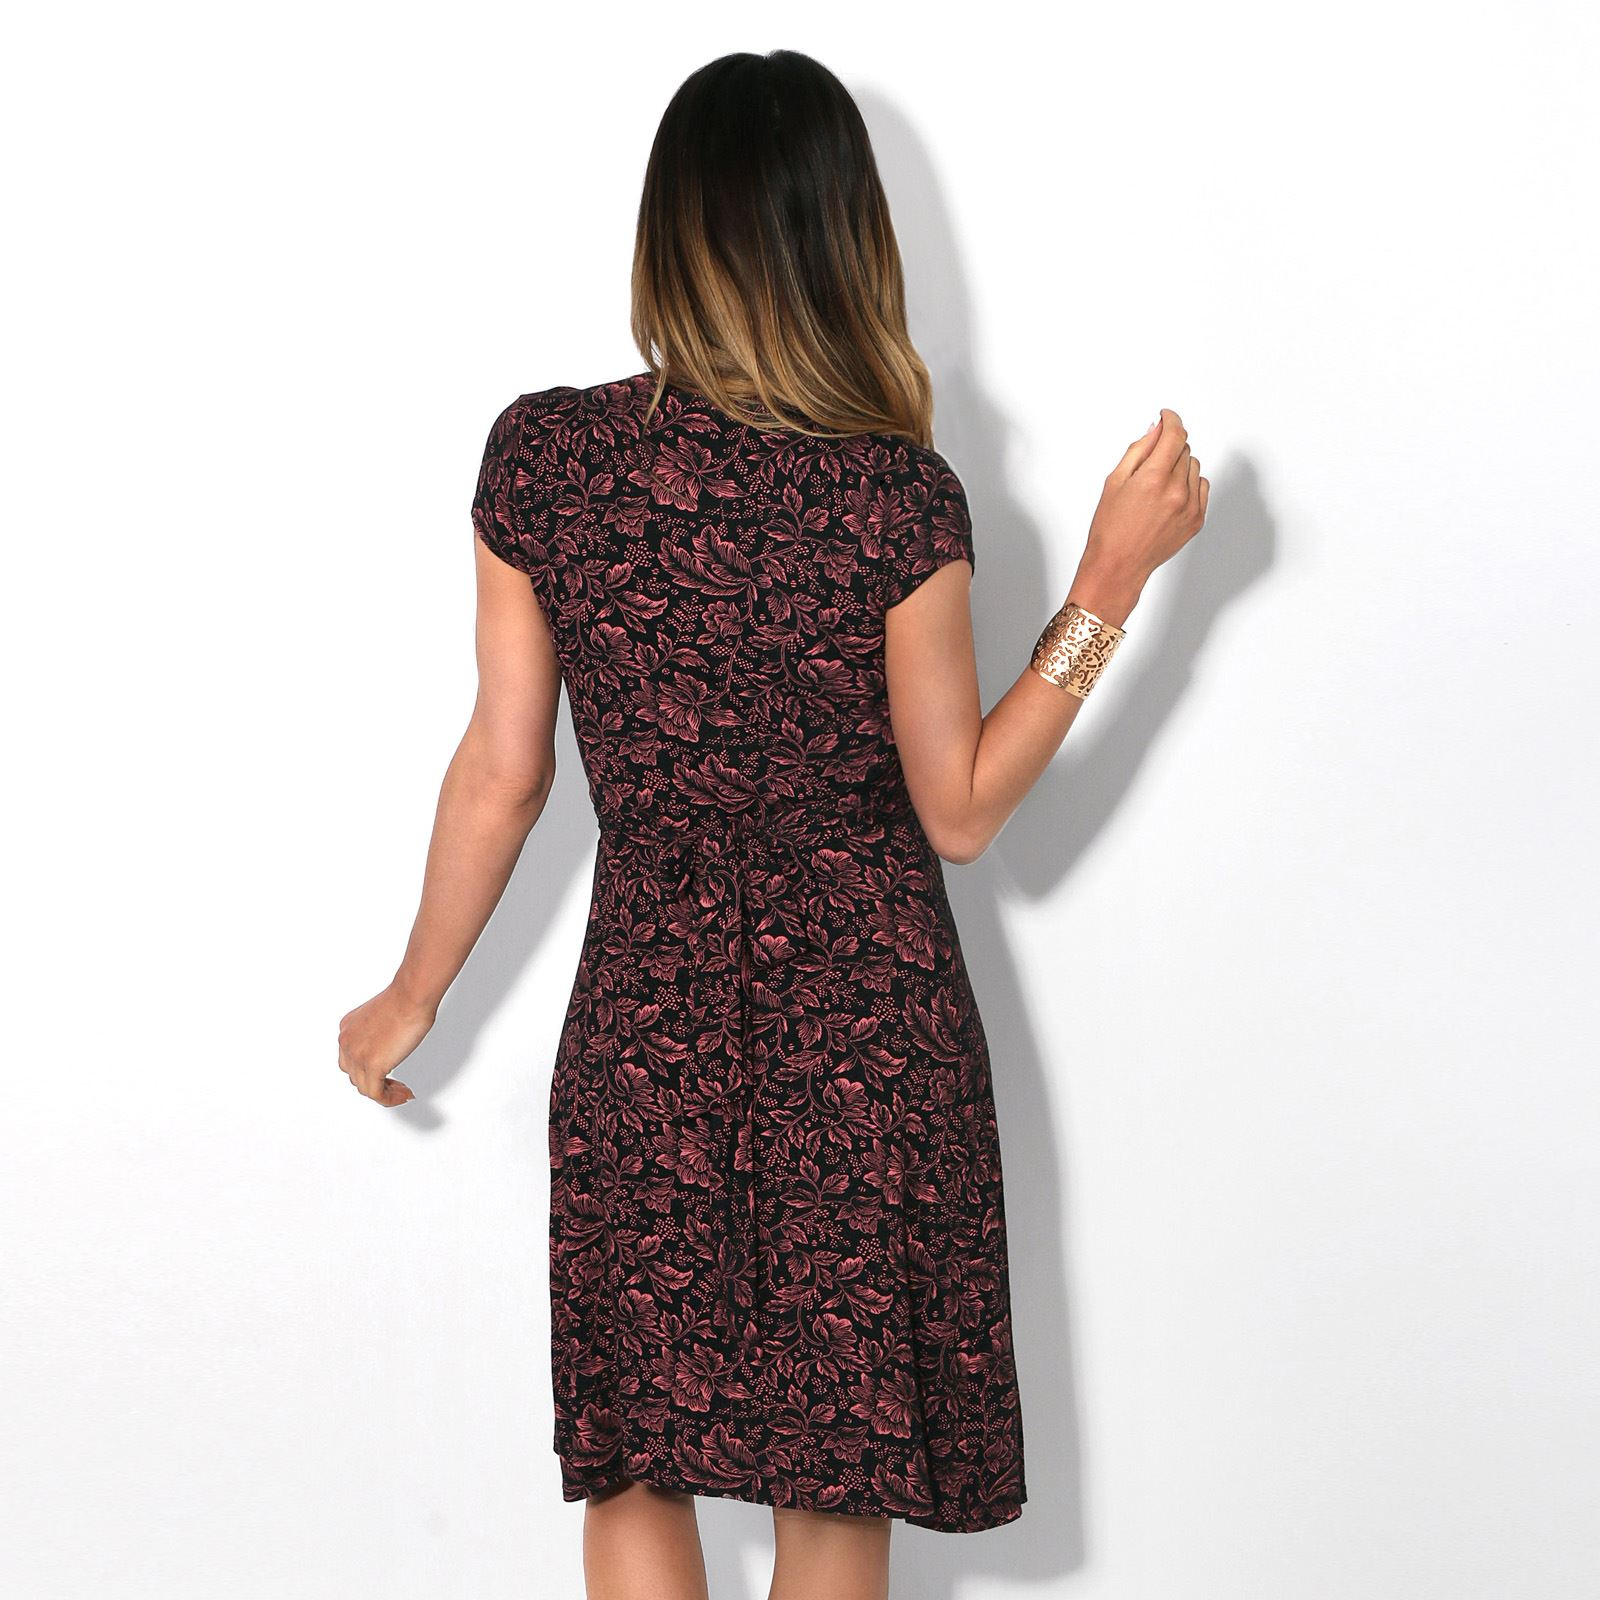 Womens-Ladies-V-Neck-Mini-Midi-Dress-Floral-Print-Knot-Short-Skirt-Party-Casual thumbnail 4